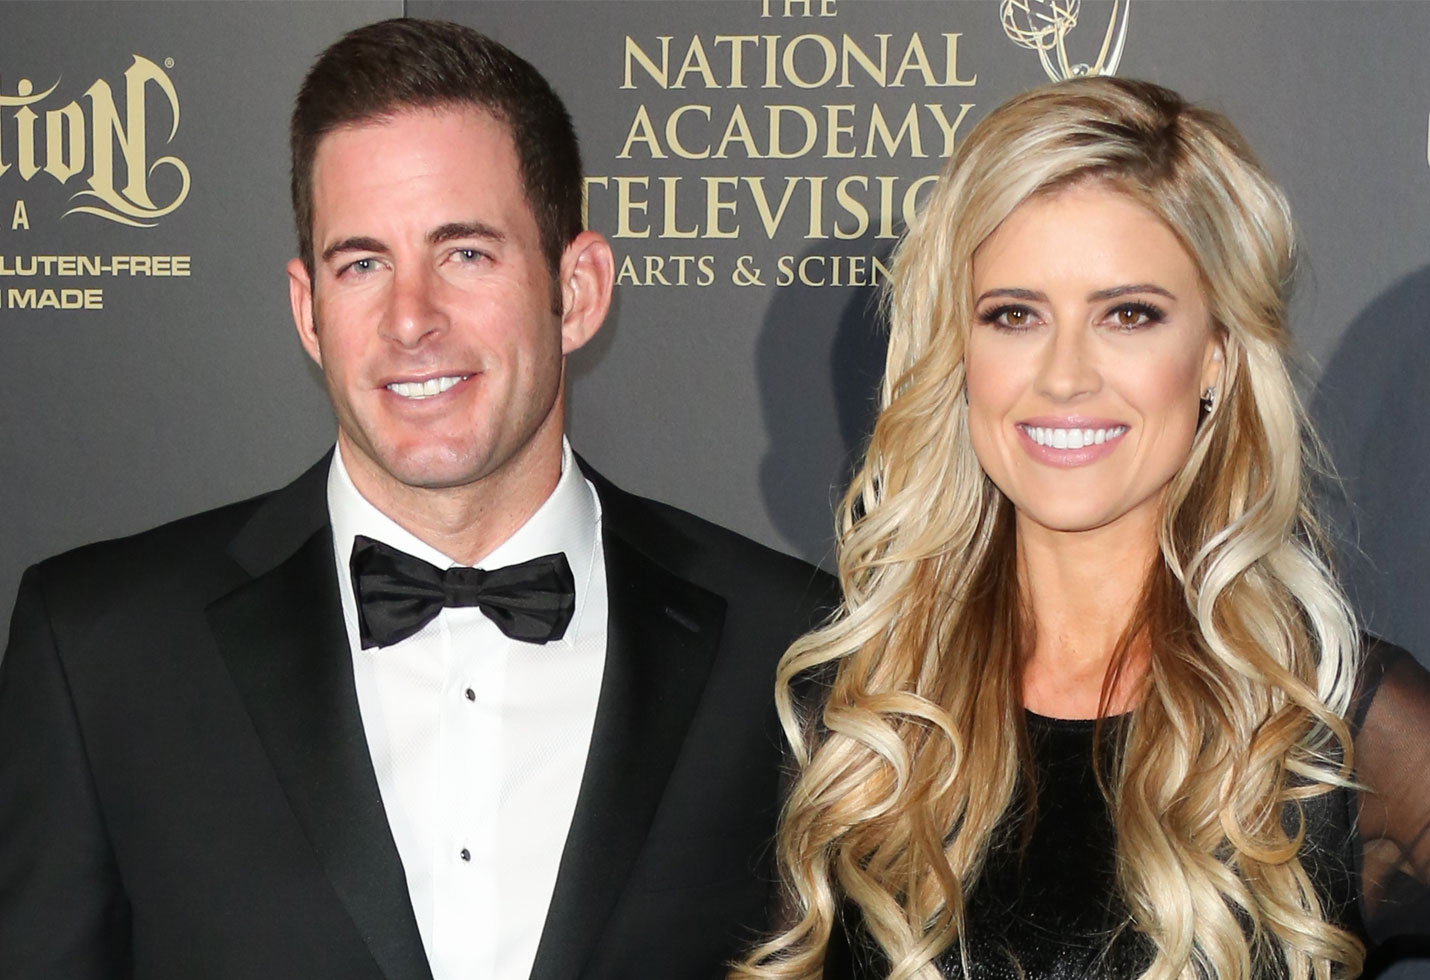 Tarek el moussa pining christina wedding